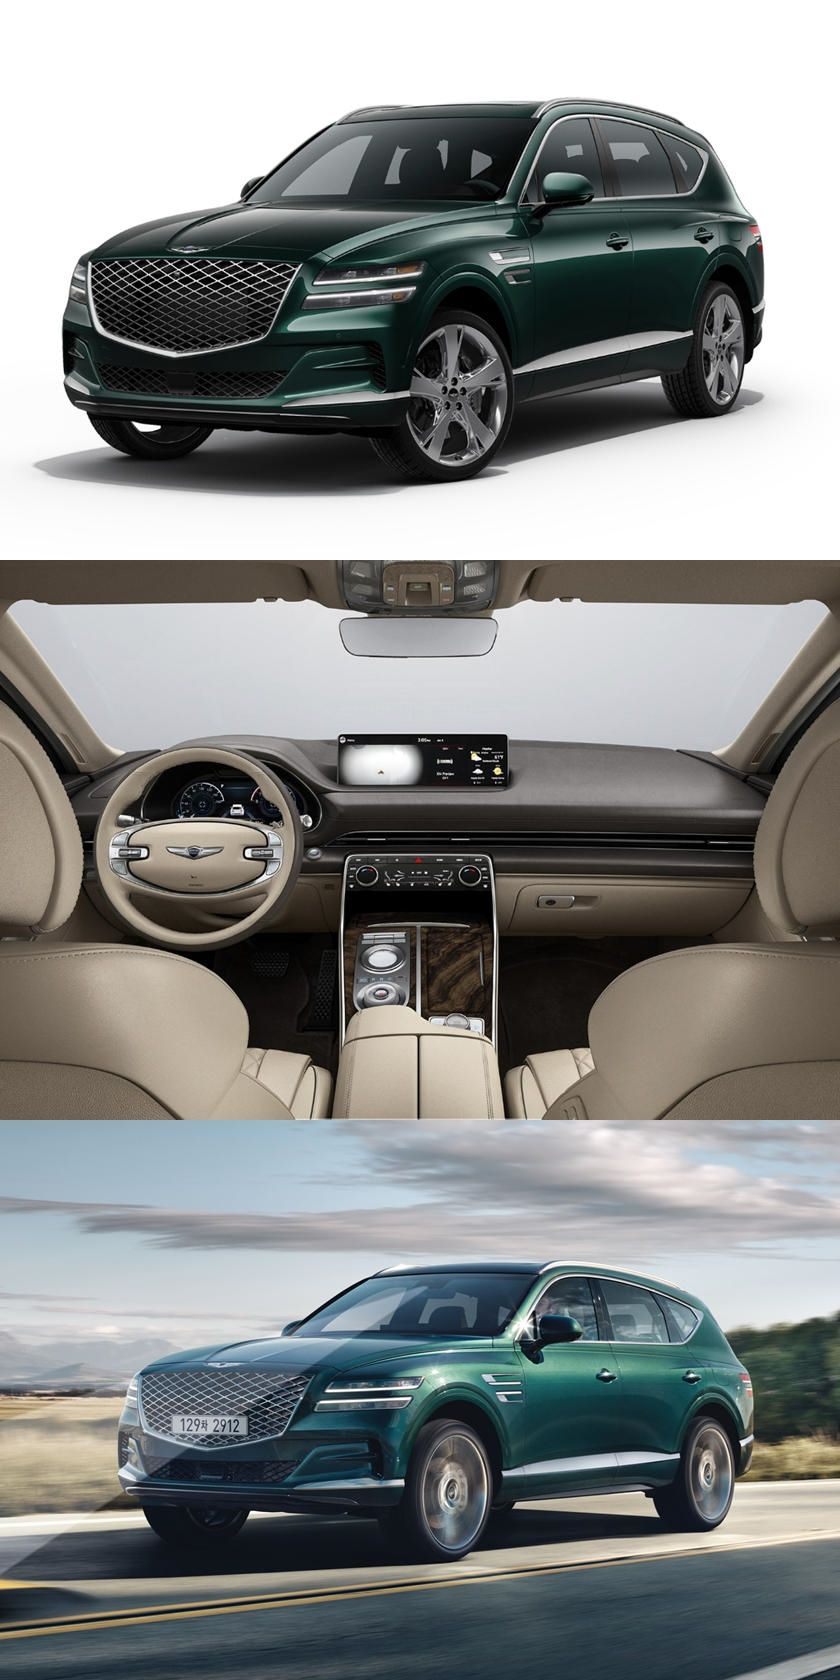 A Fully Loaded Genesis Gv80 Costs Serious Money New Online Configurator Reveals How Much A Fully Loaded Genesis Gv80 Will Co New Suv Luxury Suv Expensive Cars